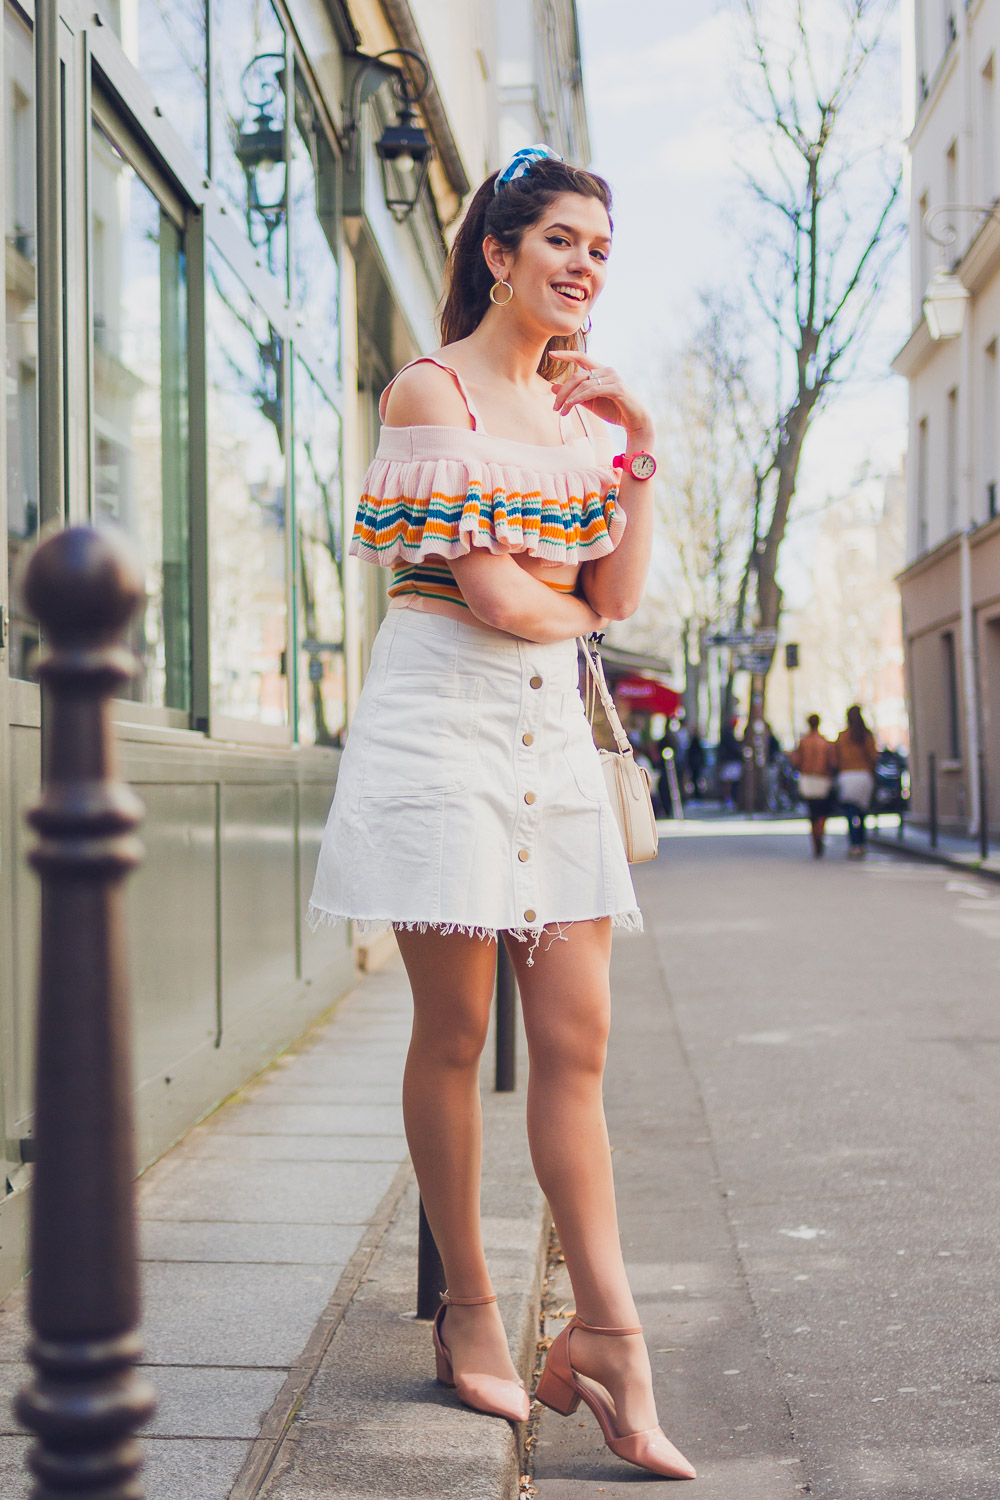 pink outfit in paris pretty streets skirt and off shoulder top